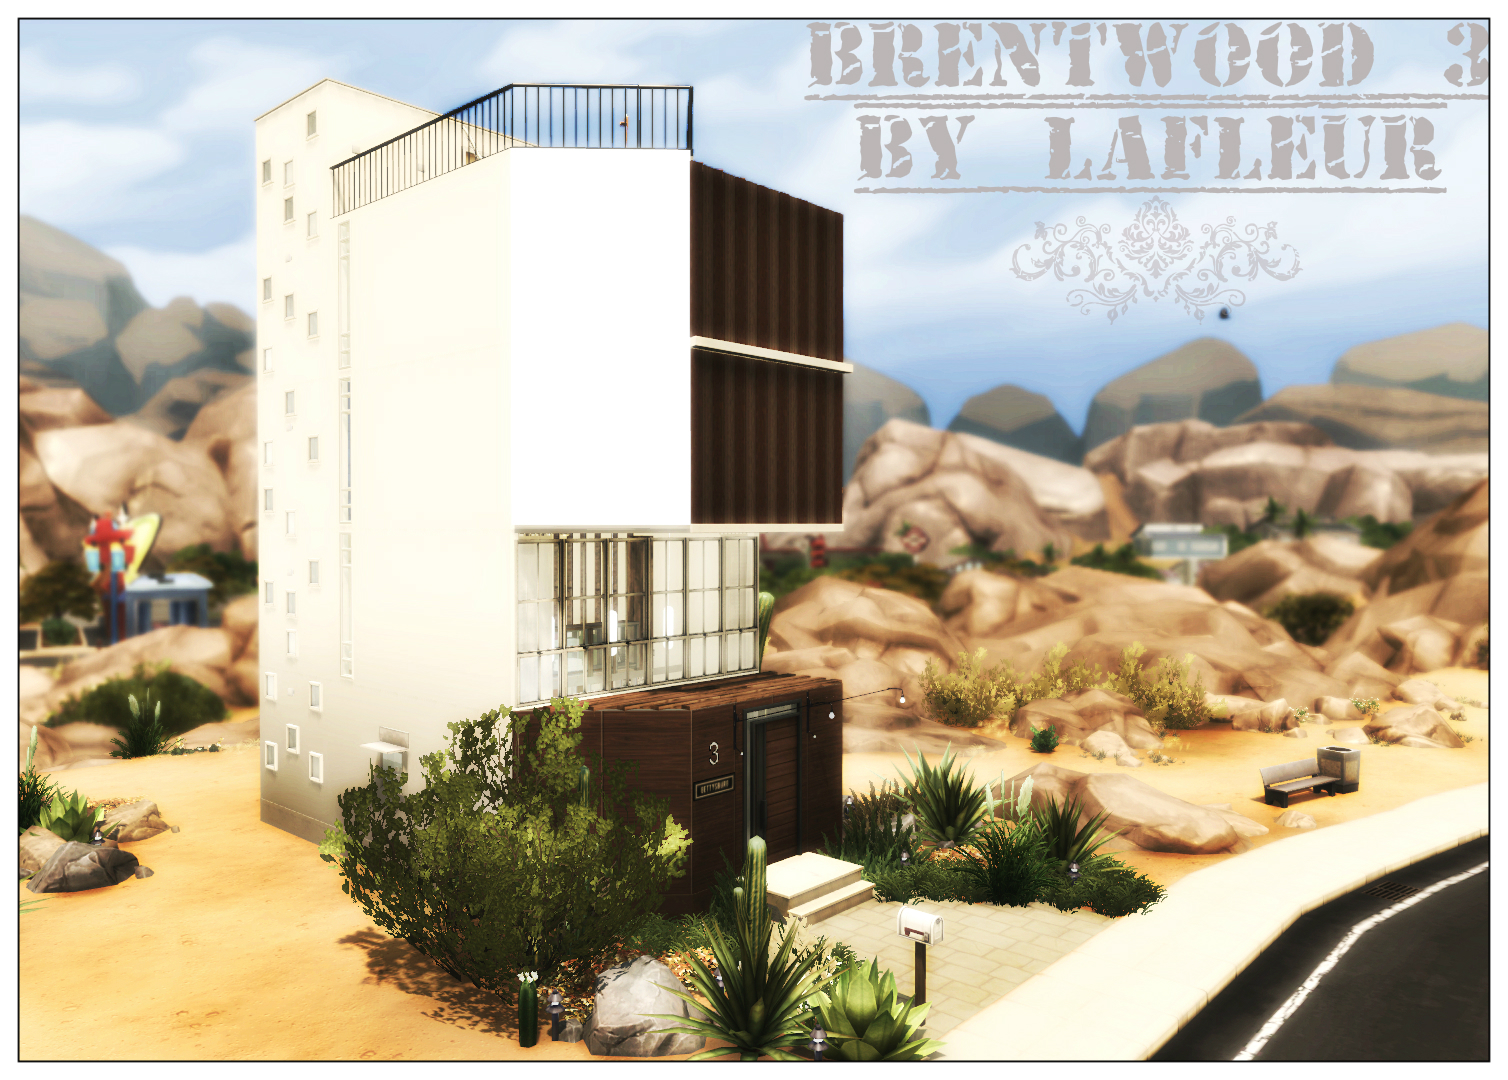 Brentwood by LaFleur